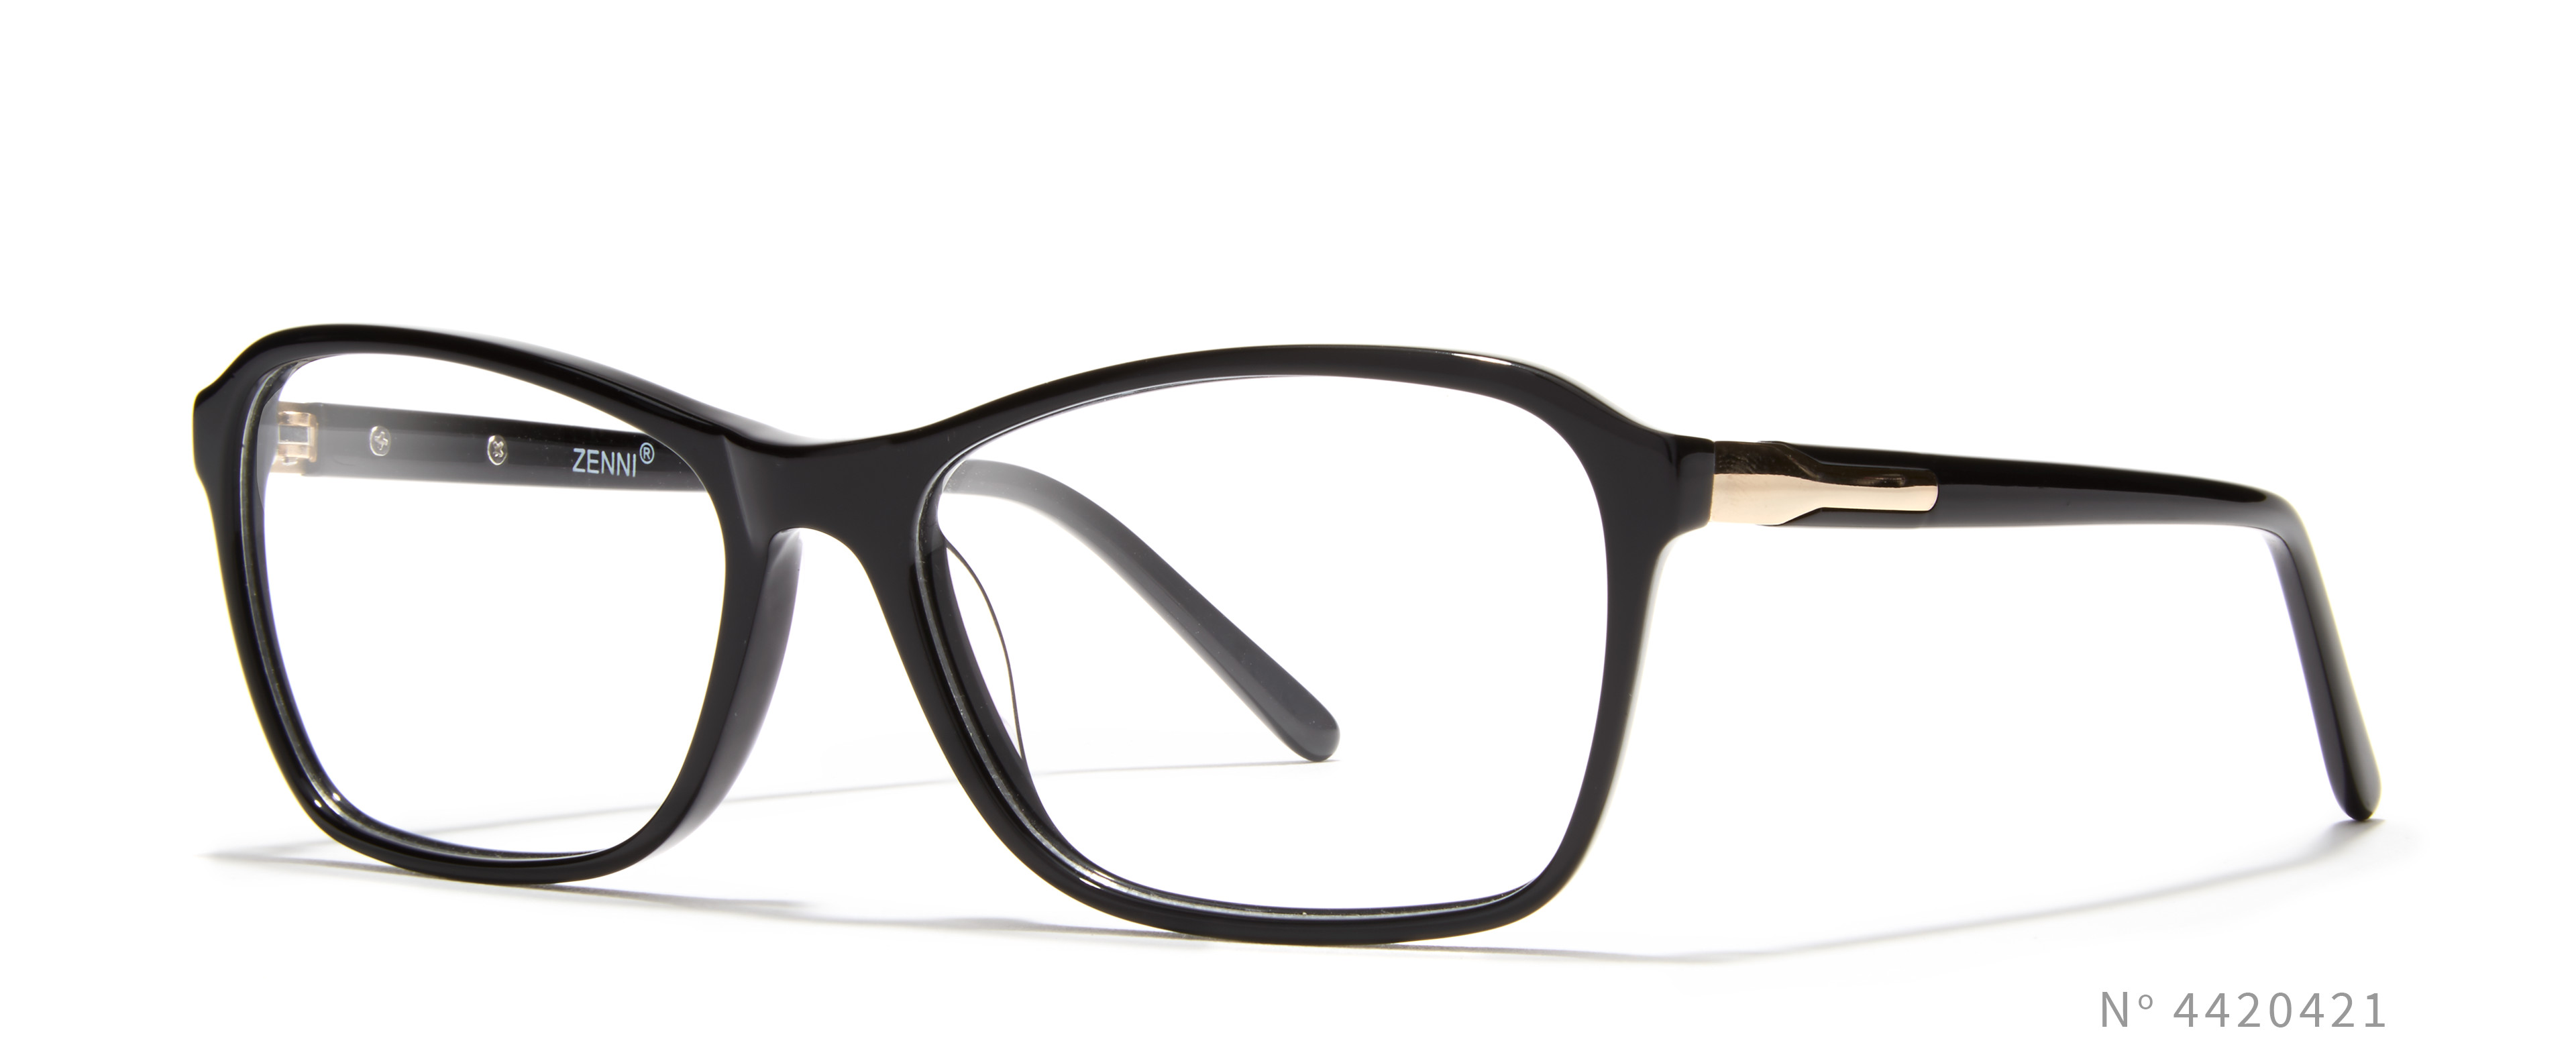 Black Angular Cateye Glasses